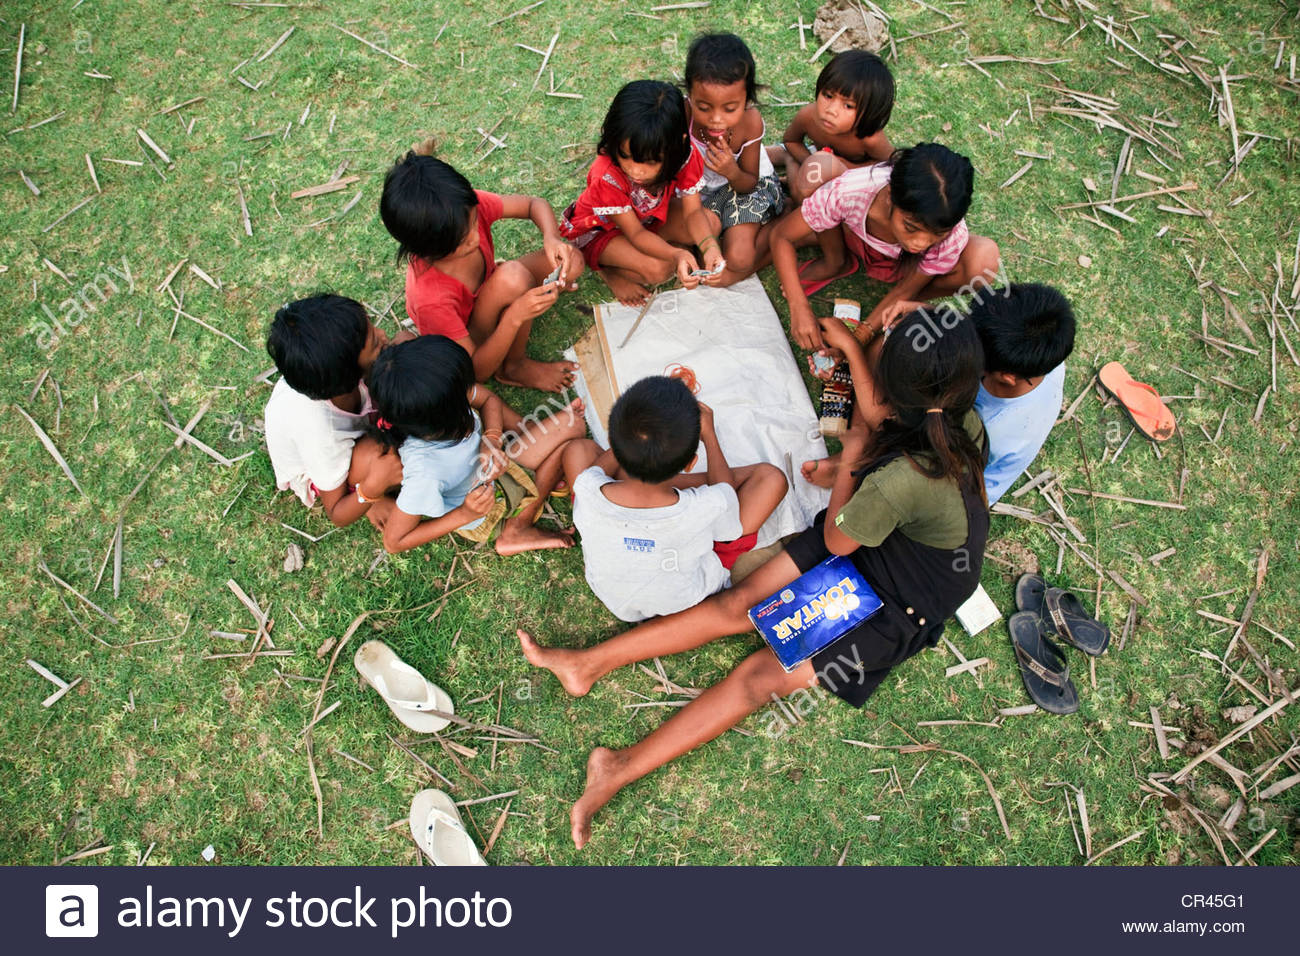 Children playing, developing country, Lombok, Indonesia, Southeast Asia - Stock Image